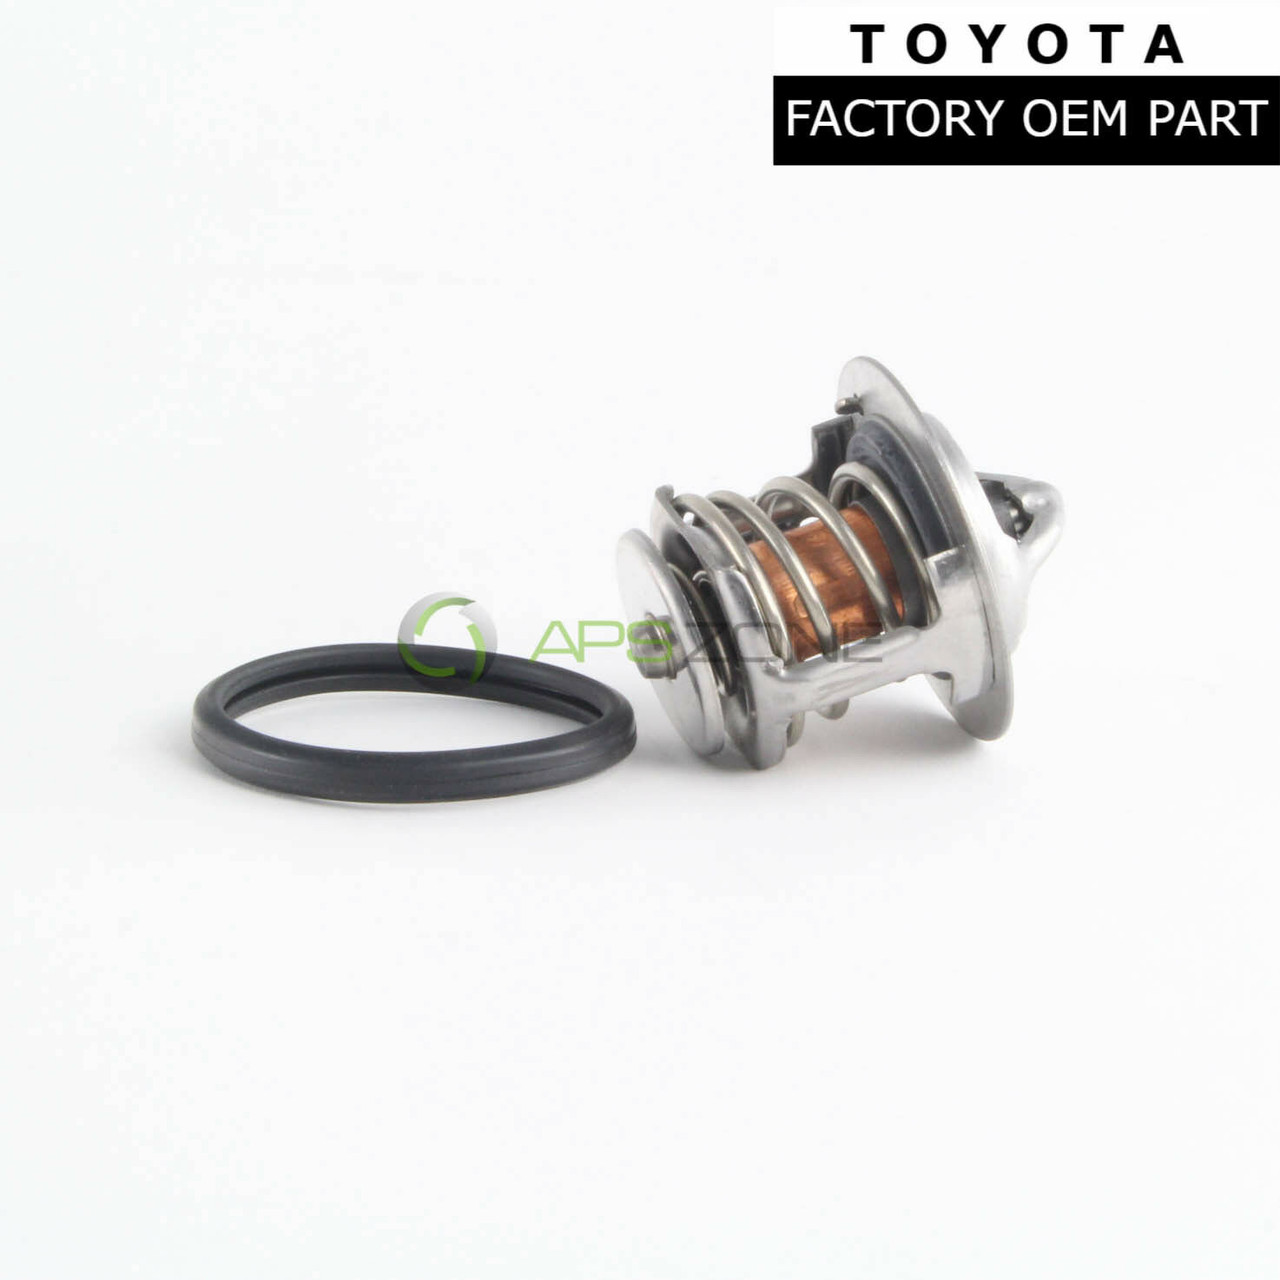 Engine Coolant Thermostat-OE Type Thermostat fits 98-99 Toyota Corolla 1.8L-L4